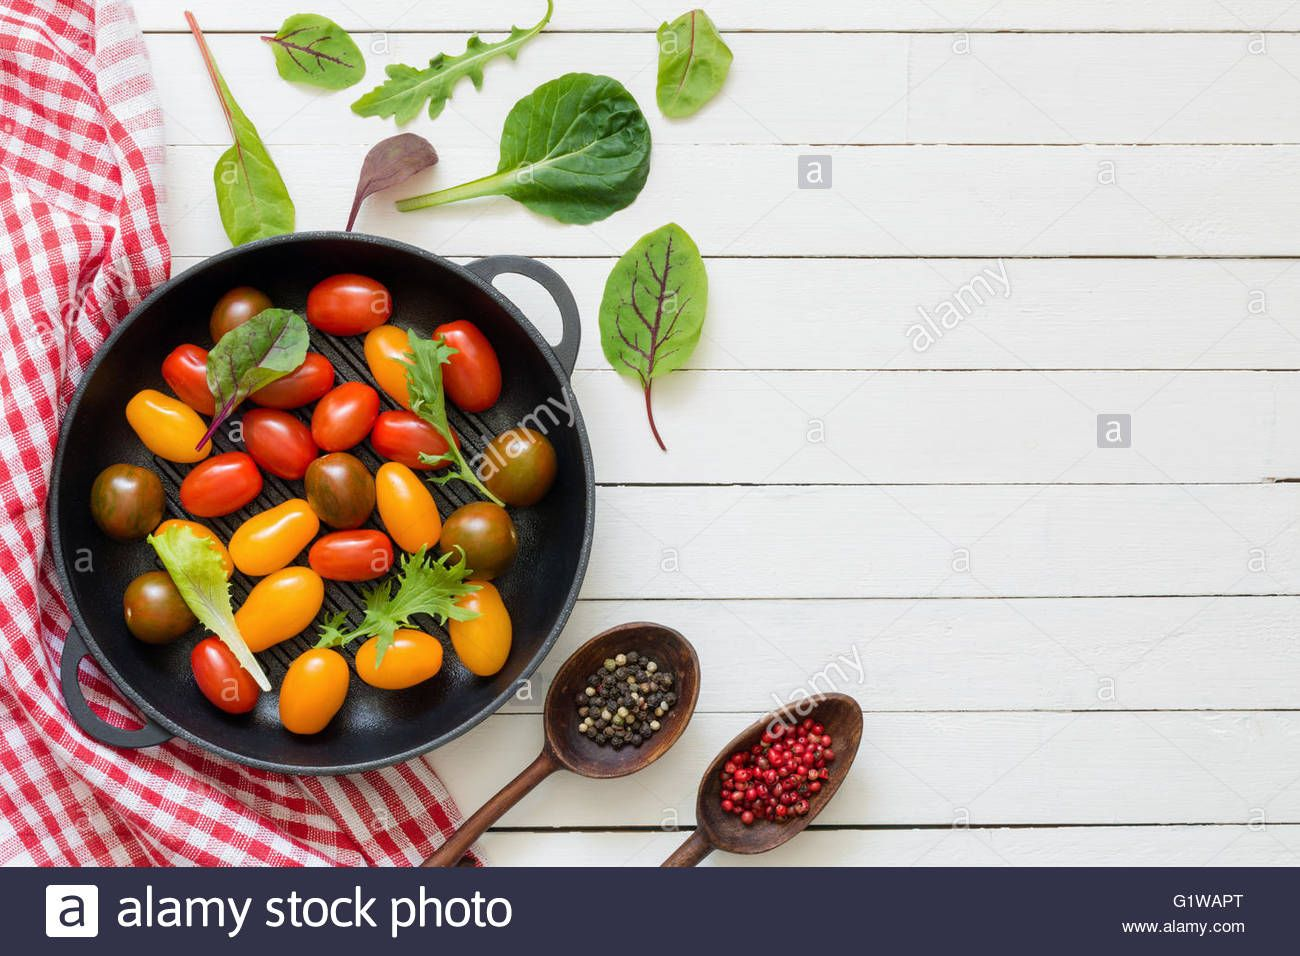 Vegetables spices and cooking utensils on white wooden background stock photo vegetables spices and cooking utensils on white wooden background mock up for recipes cook book forumfinder Choice Image